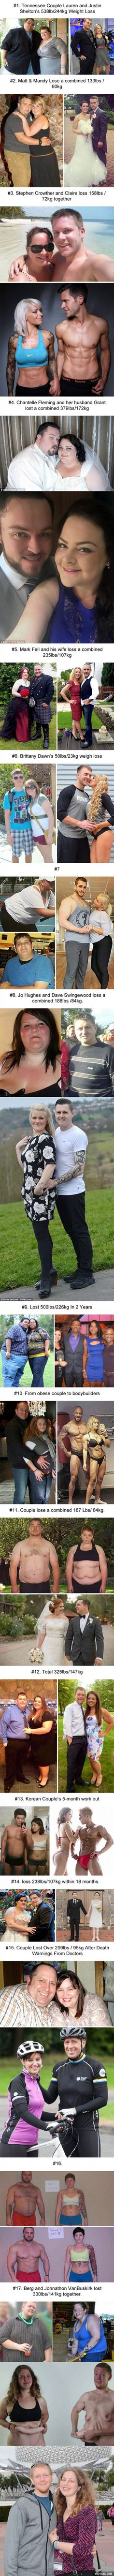 17 Dramatic Before-And-After Photos Of Couples Losing Weight Together